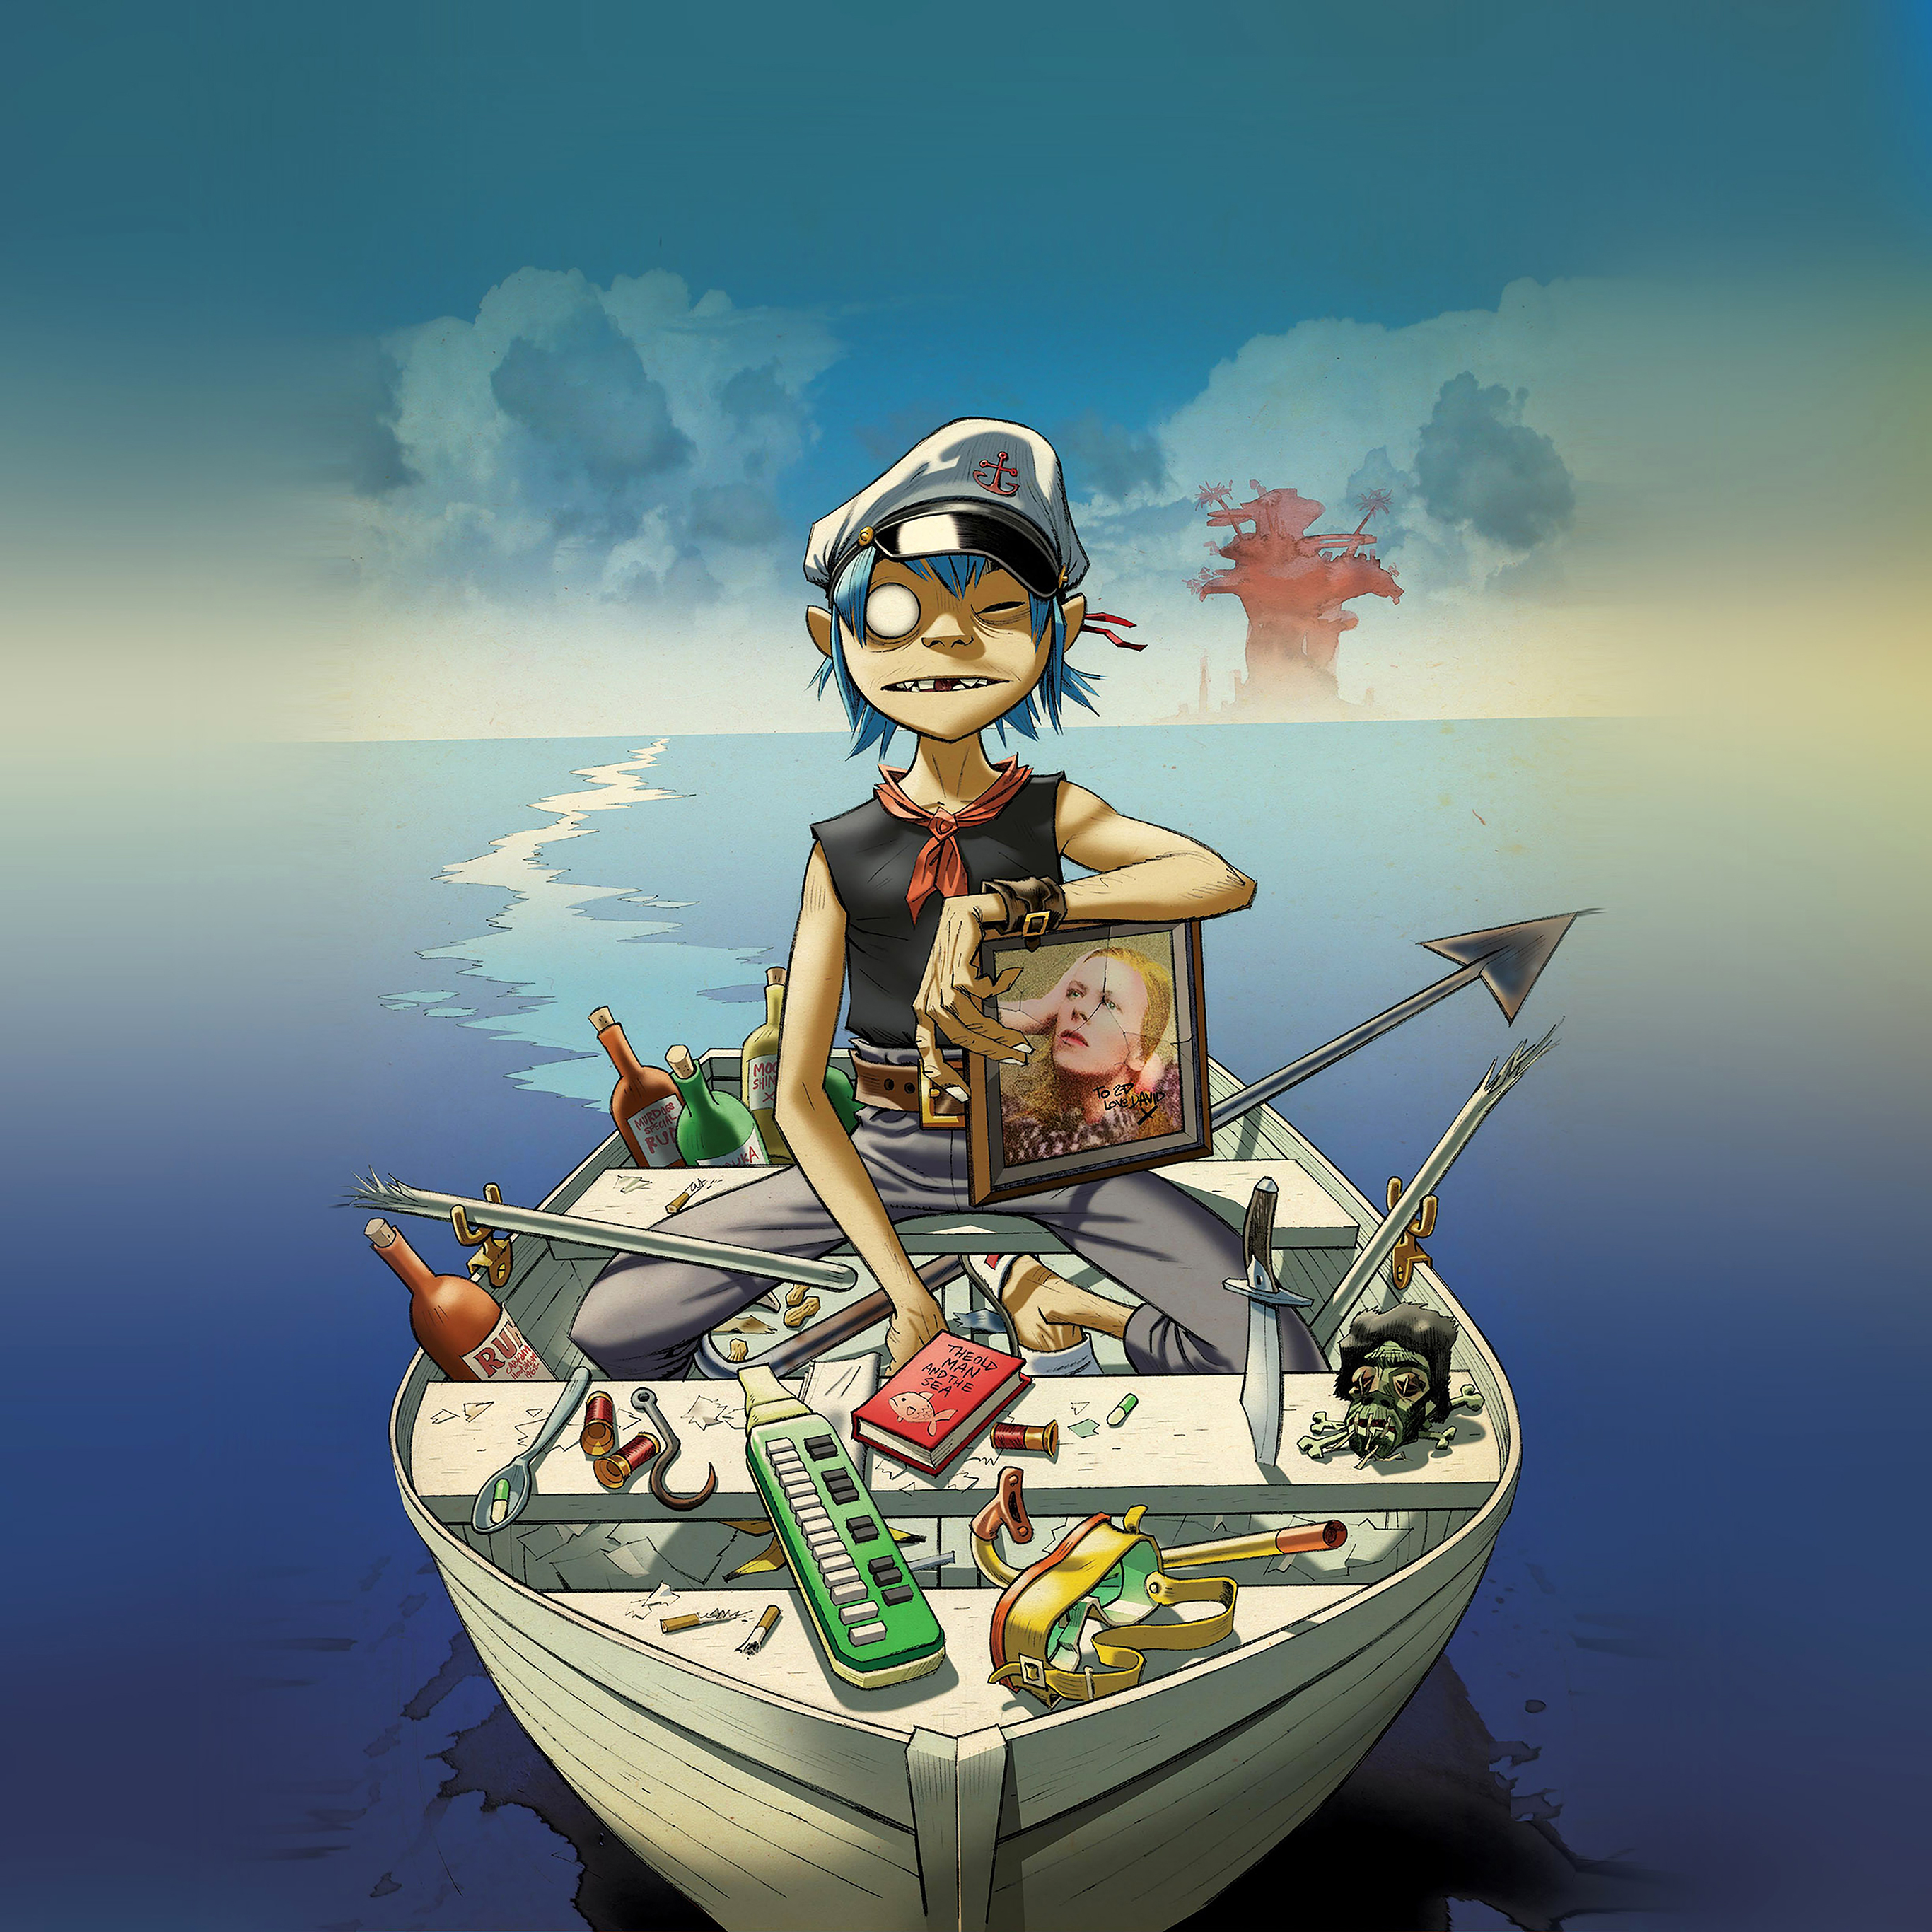 Ab05 Wallpaper Gorillaz Boat Illust Music Papers Co